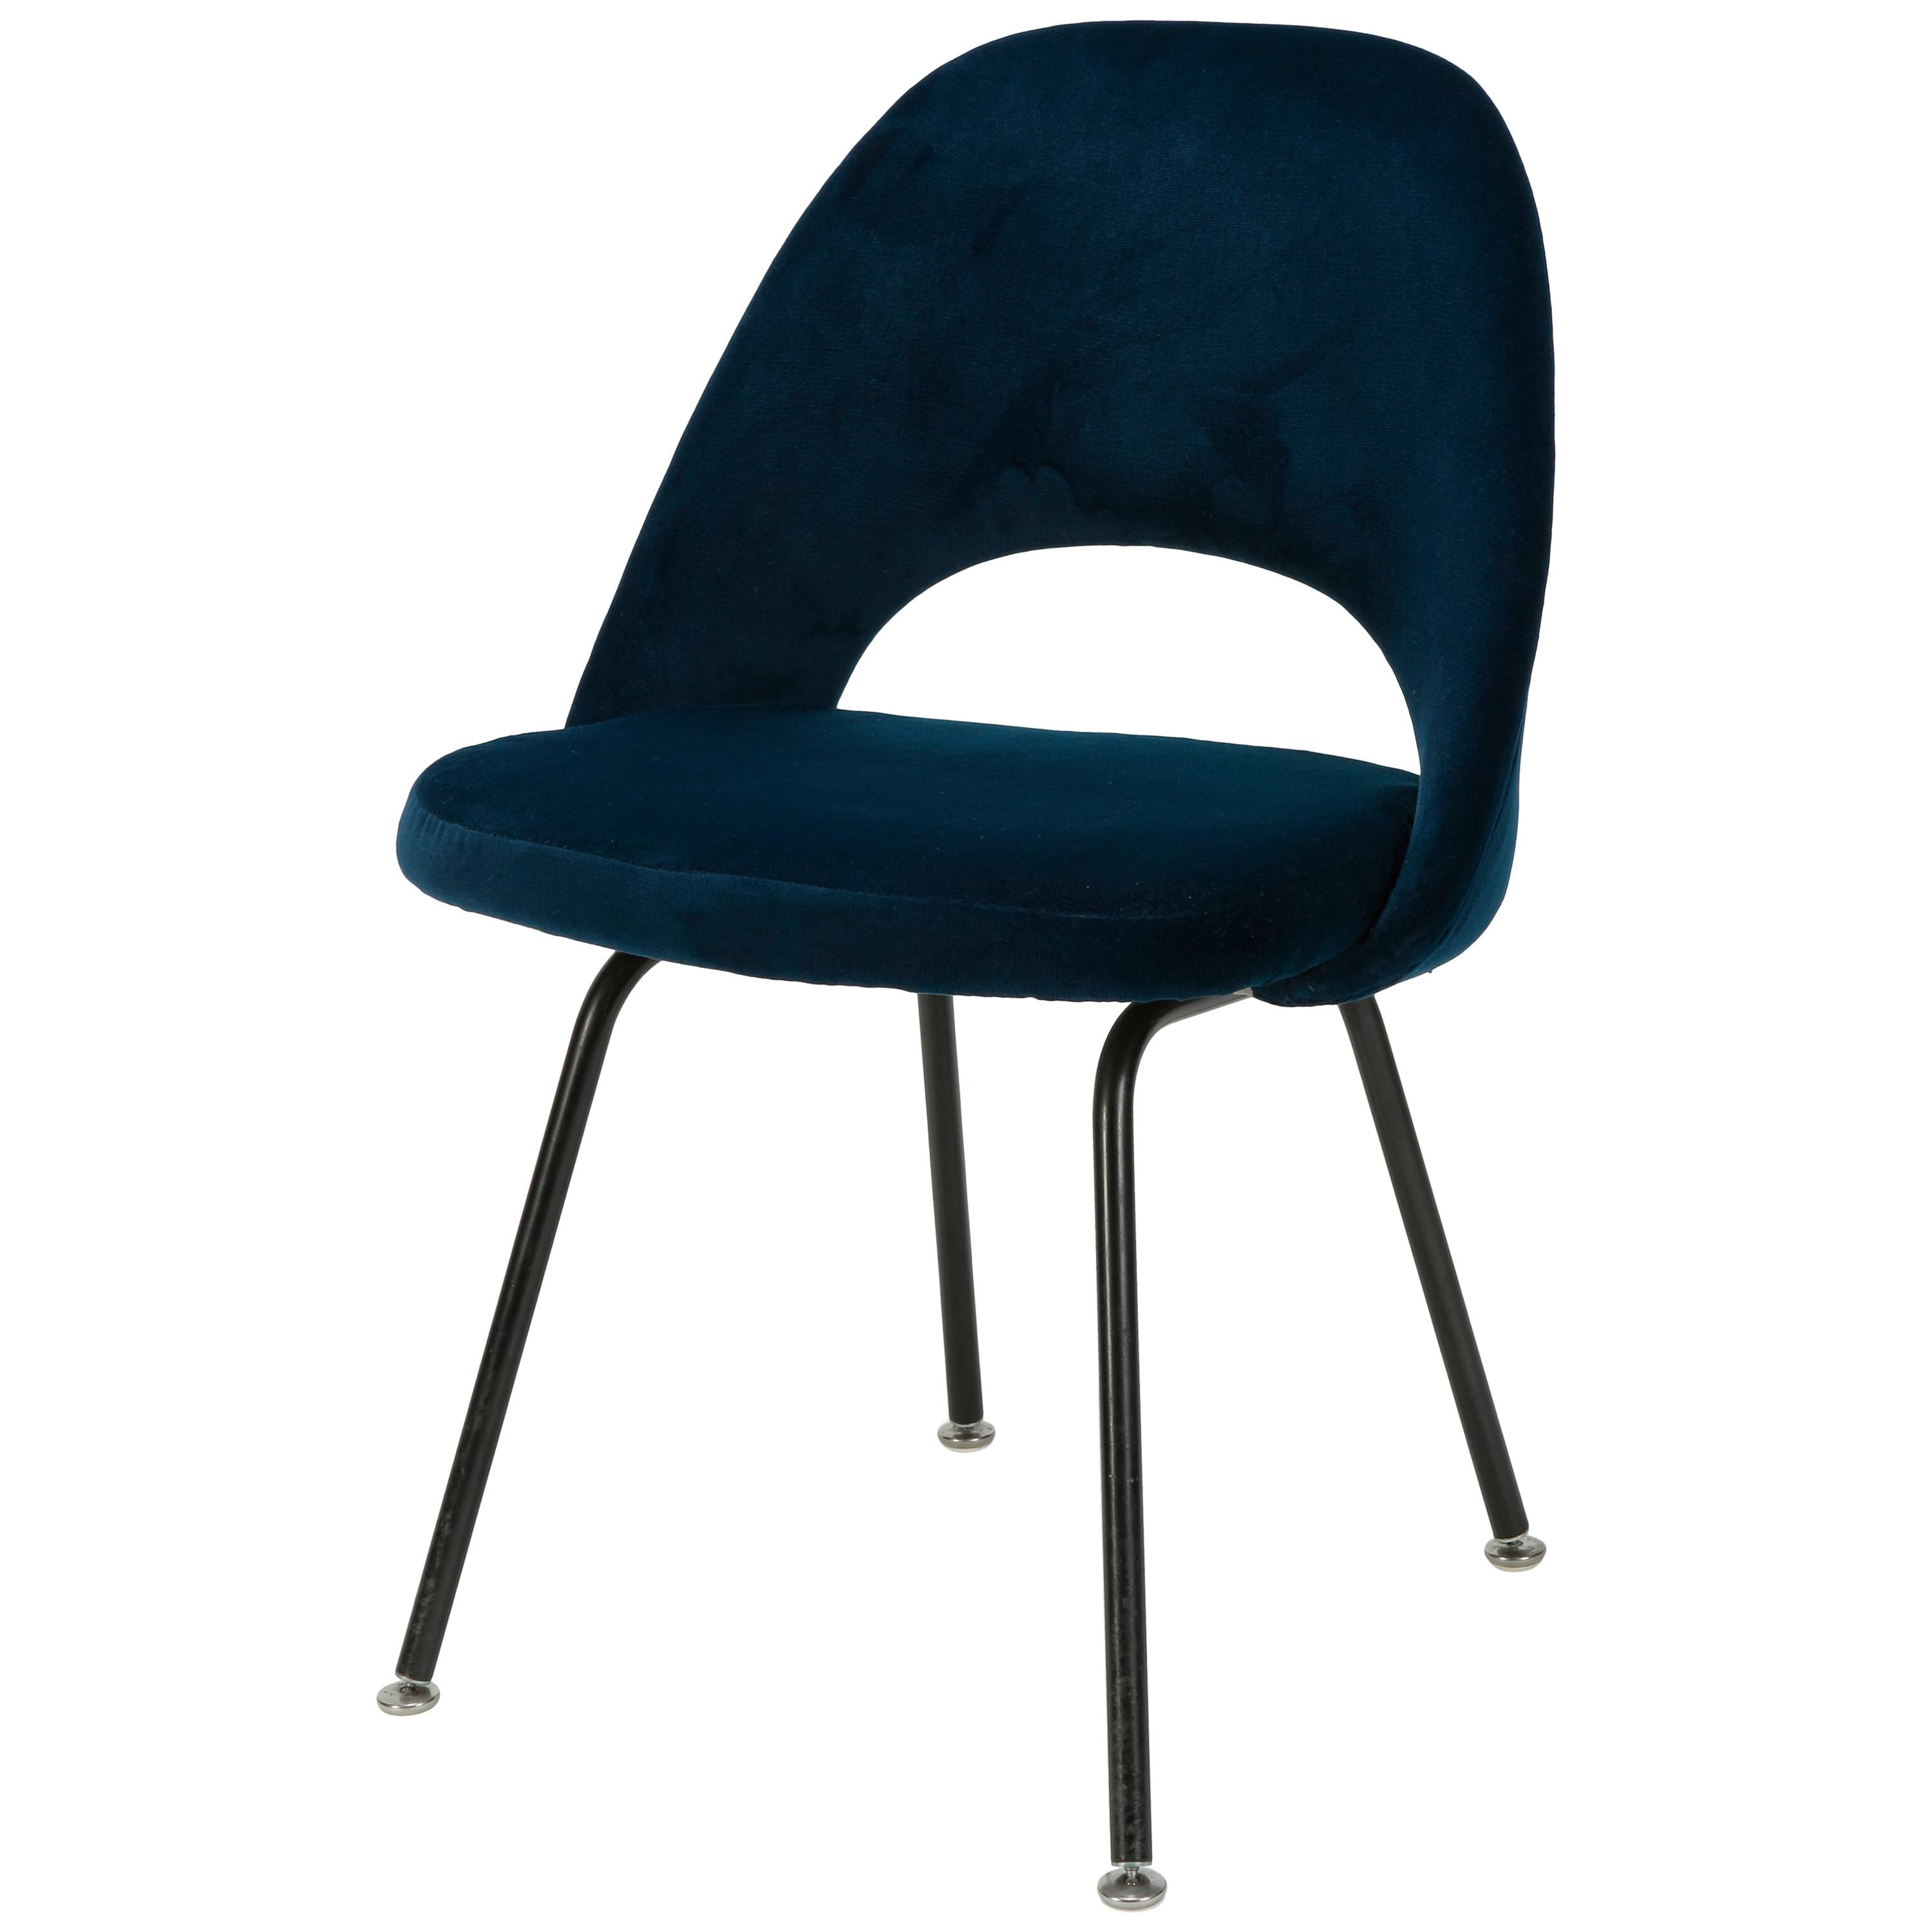 Eero Saarinen Chair Model 72 Knoll International 1950s  sc 1 st  1stDibs & Pair of Eero Saarinen Chairs by Knoll 1950s For Sale at 1stdibs